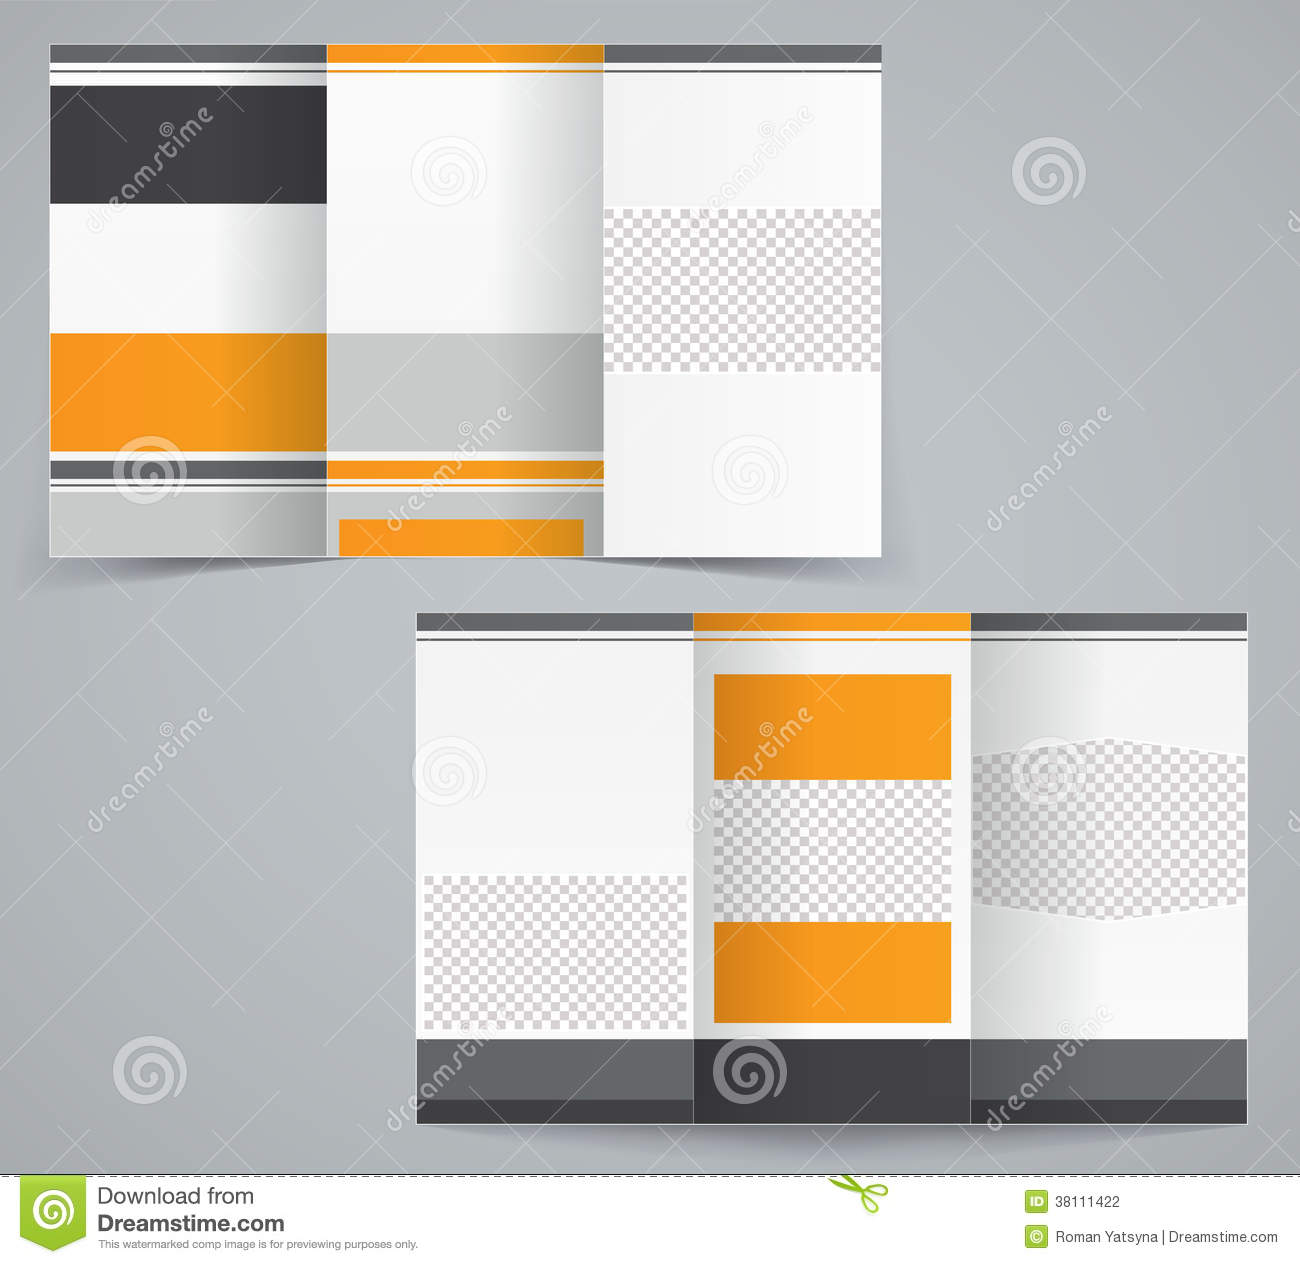 Tri fold business brochure template stock vector illustration of download tri fold business brochure template stock vector illustration of background flyer wajeb Images